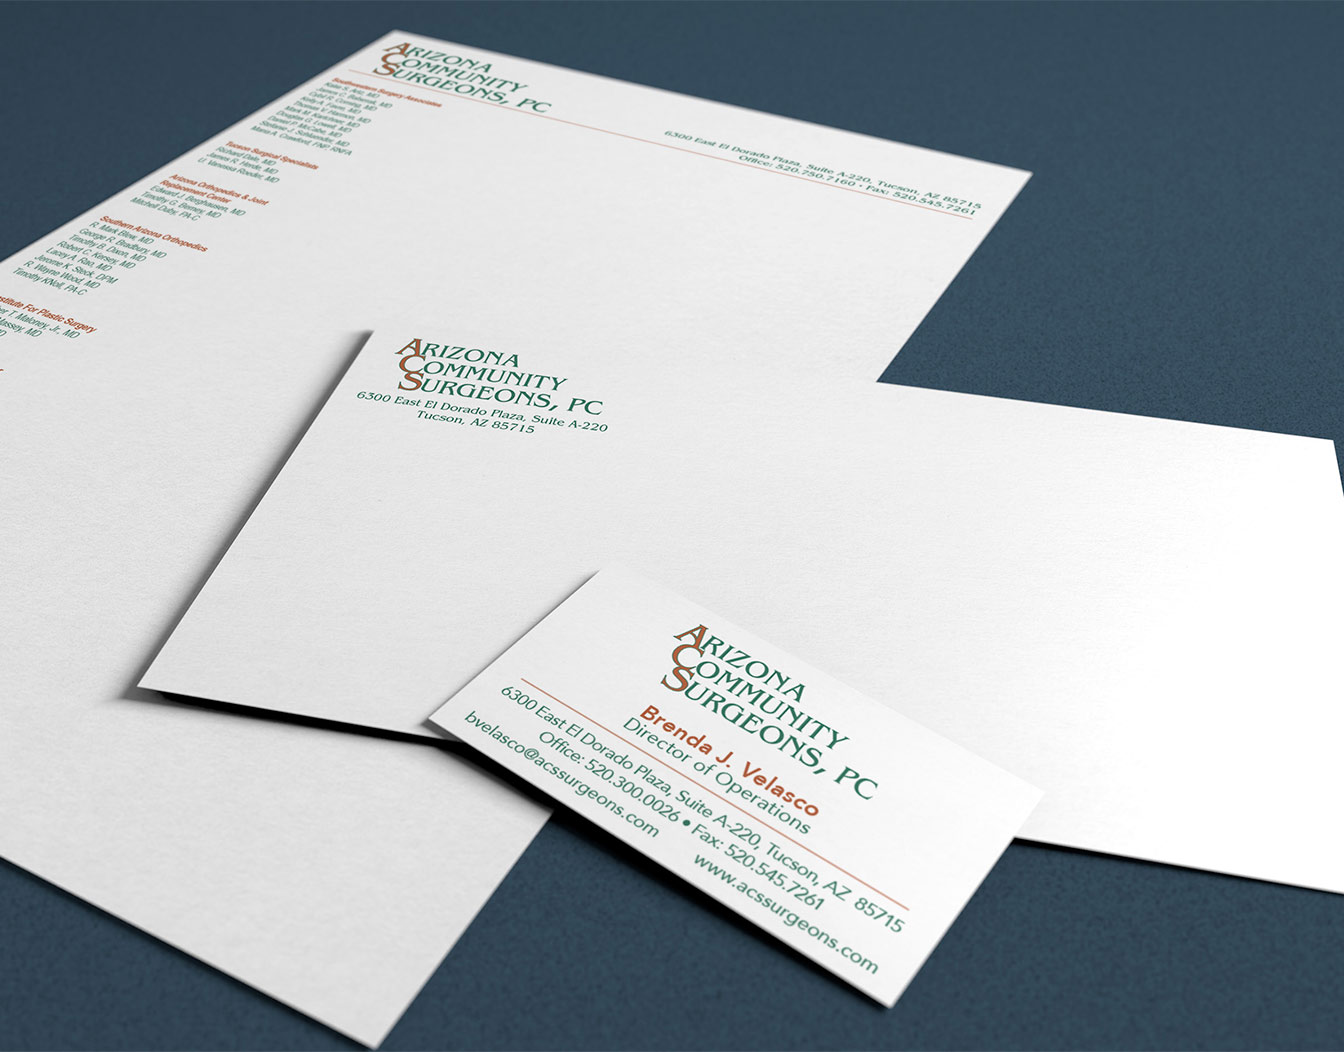 Classic business stationary